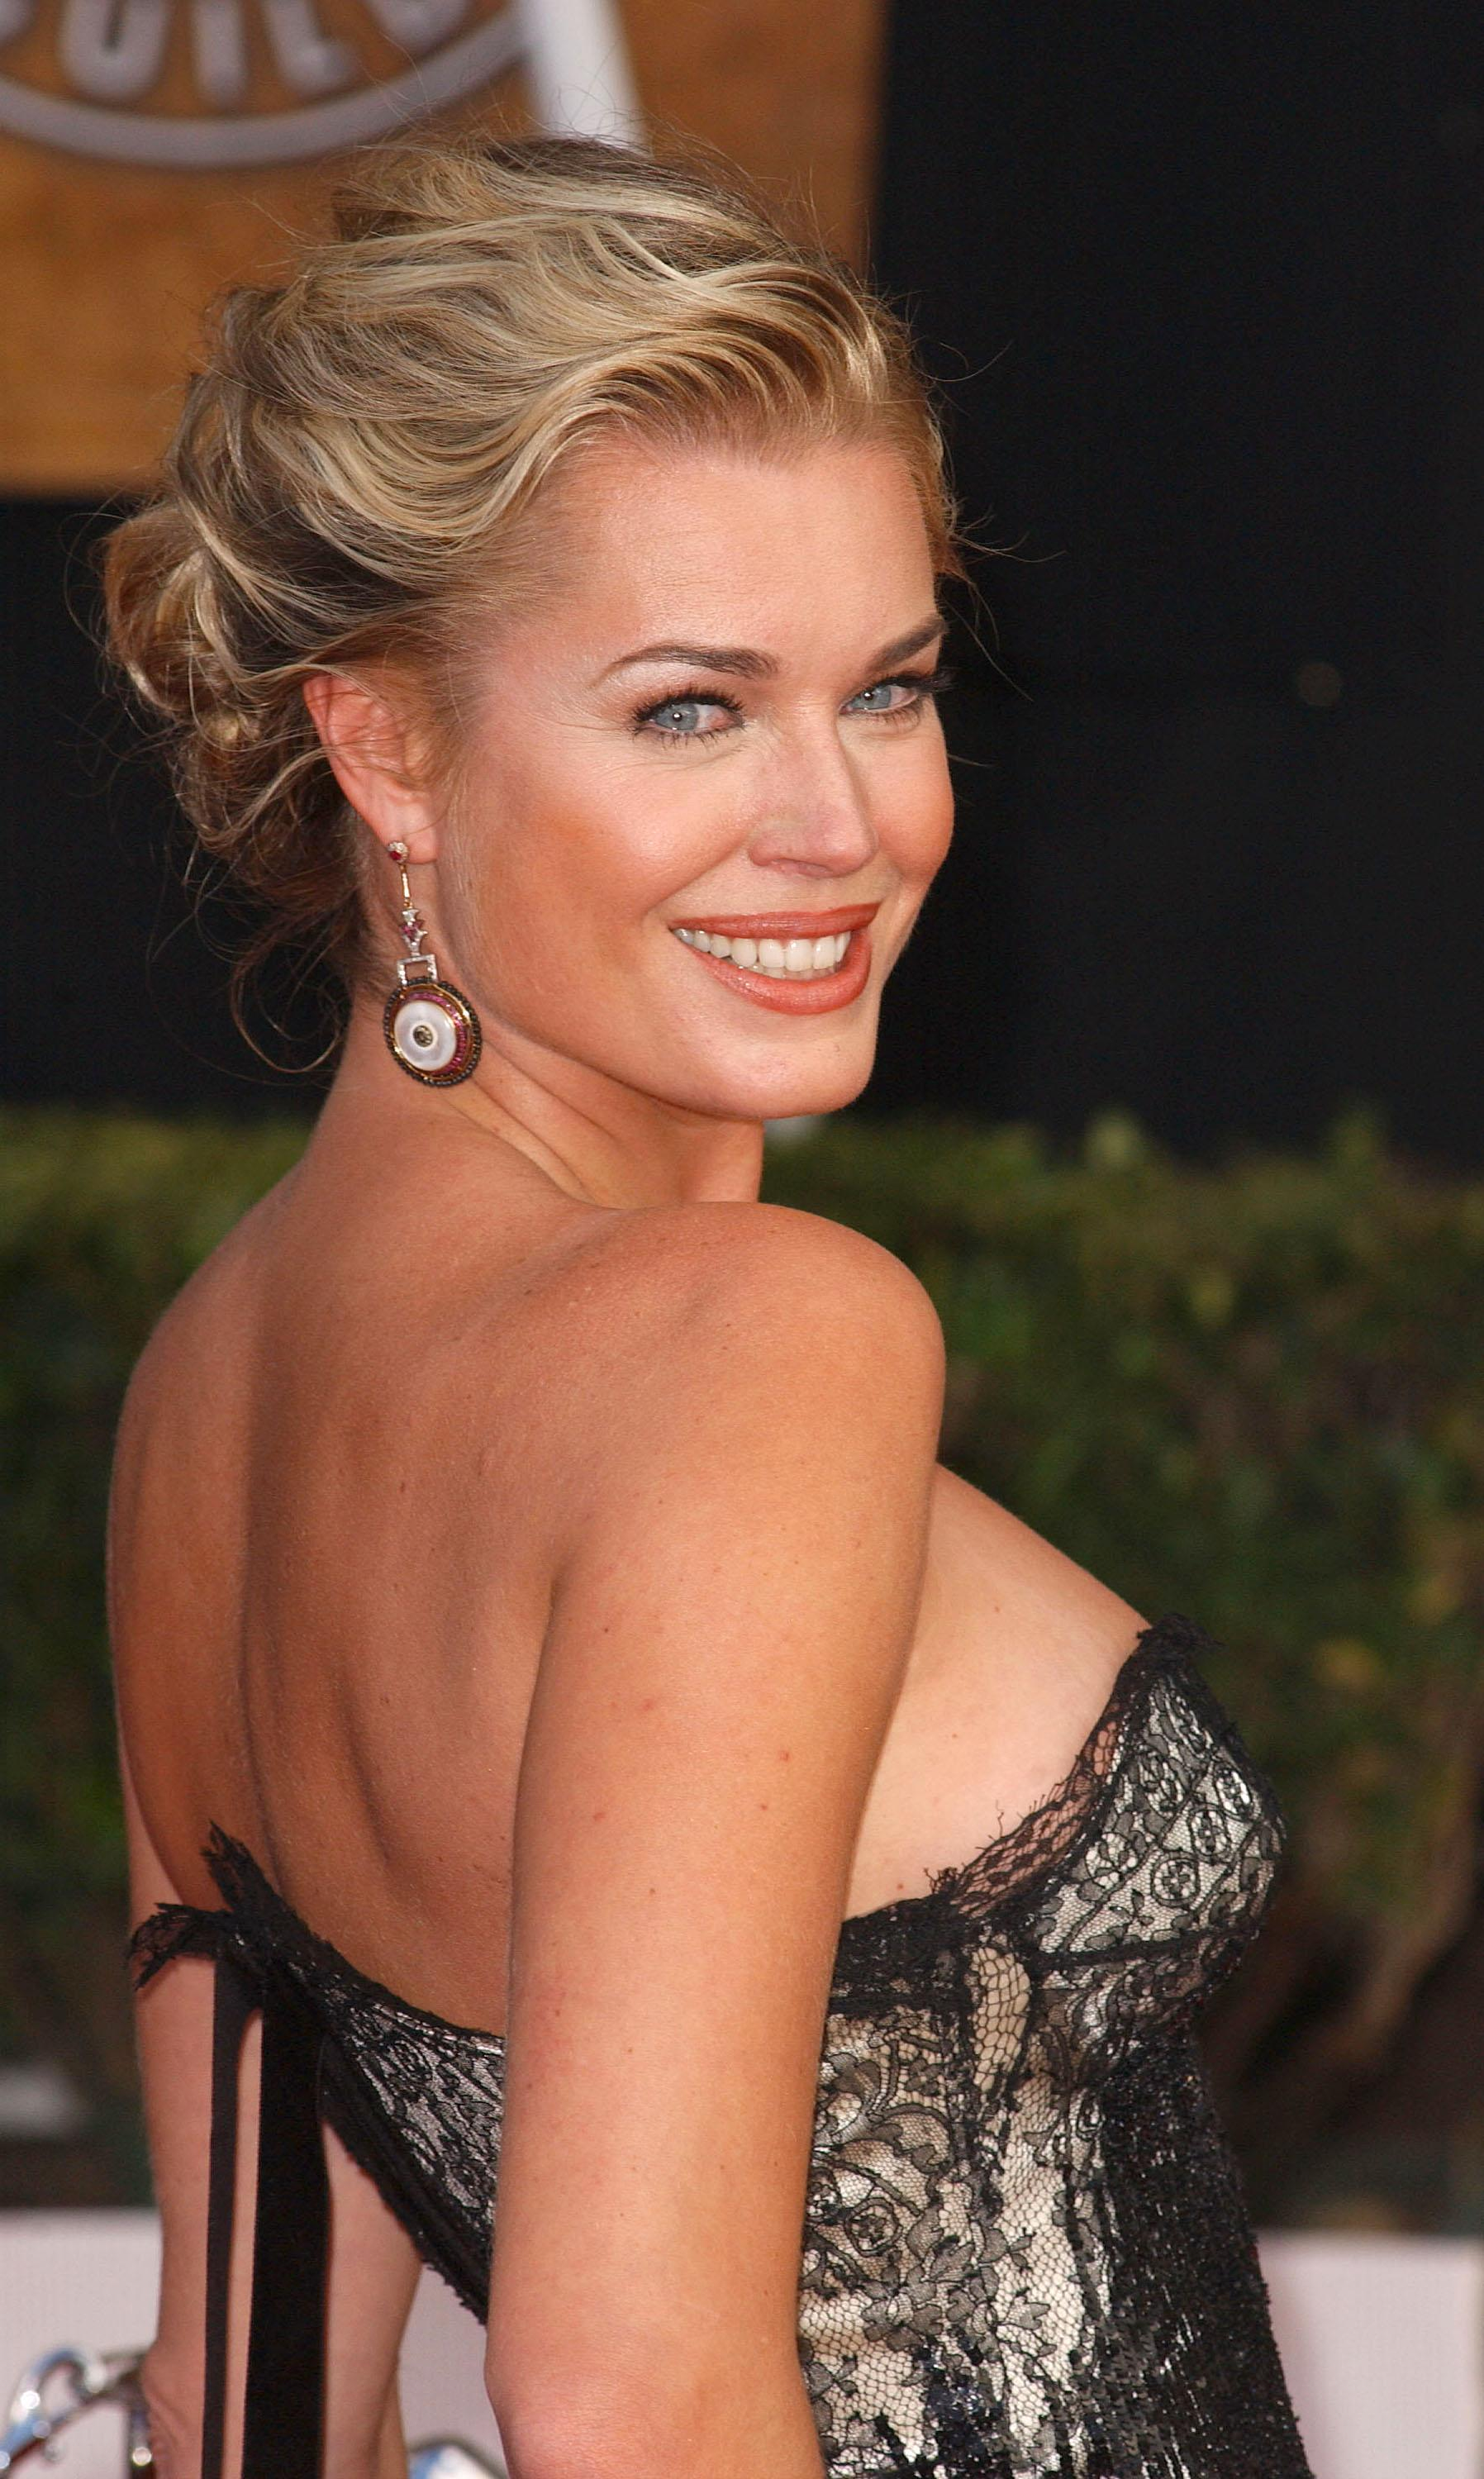 Rebecca Romijn Photo 171 Of 332 Pics Wallpaper Photo